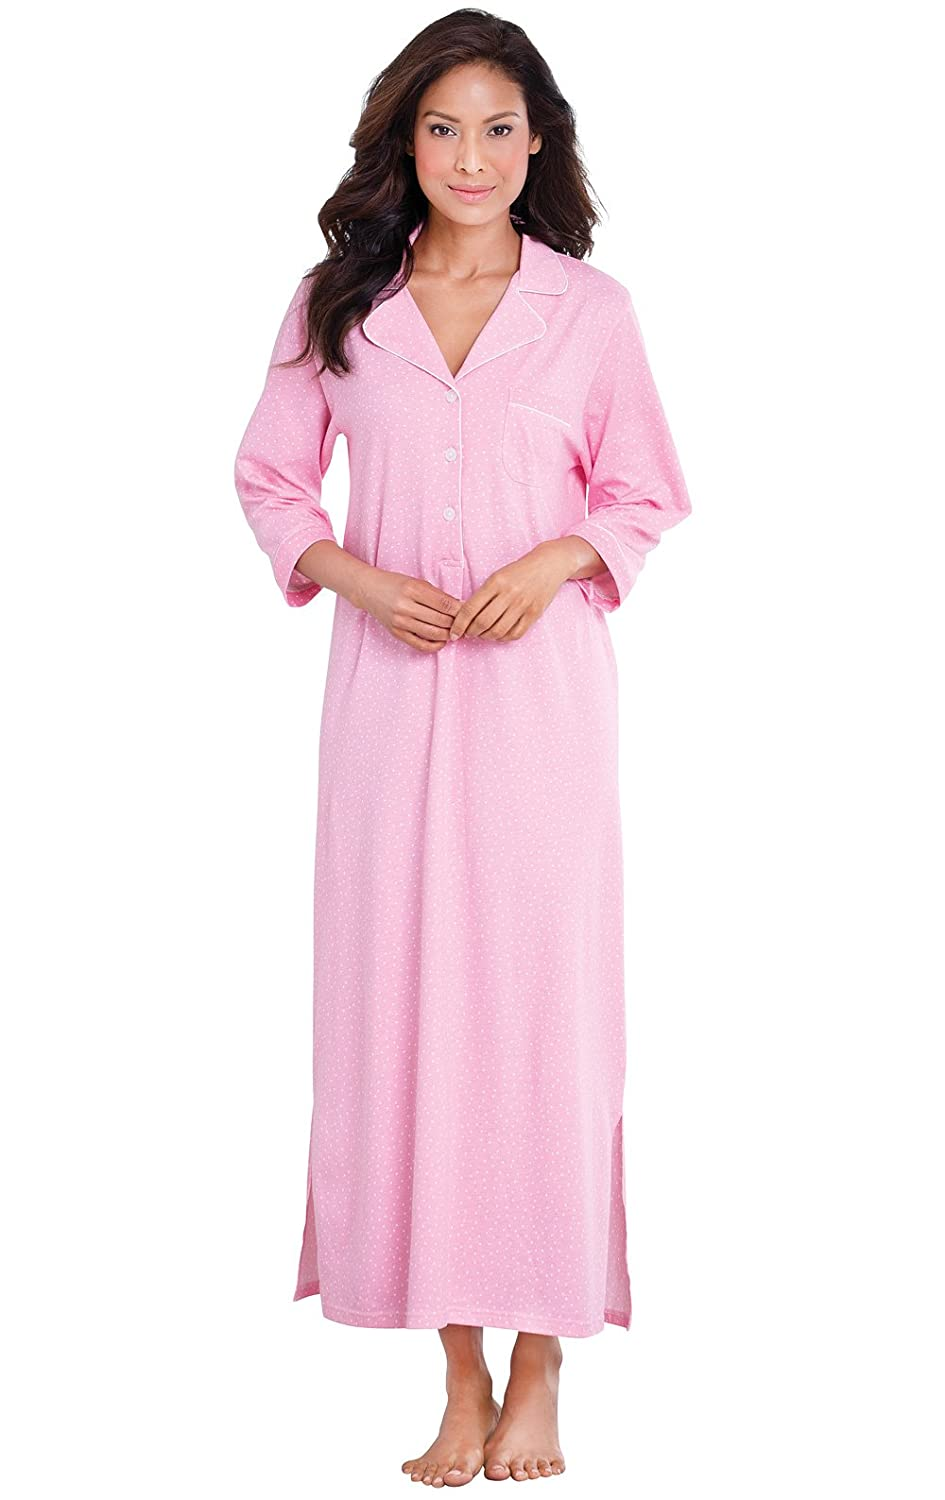 Nightgowns for Women Cotton GAMV05555 PajamaGram Oh-So-Soft Long Nightgown Womens